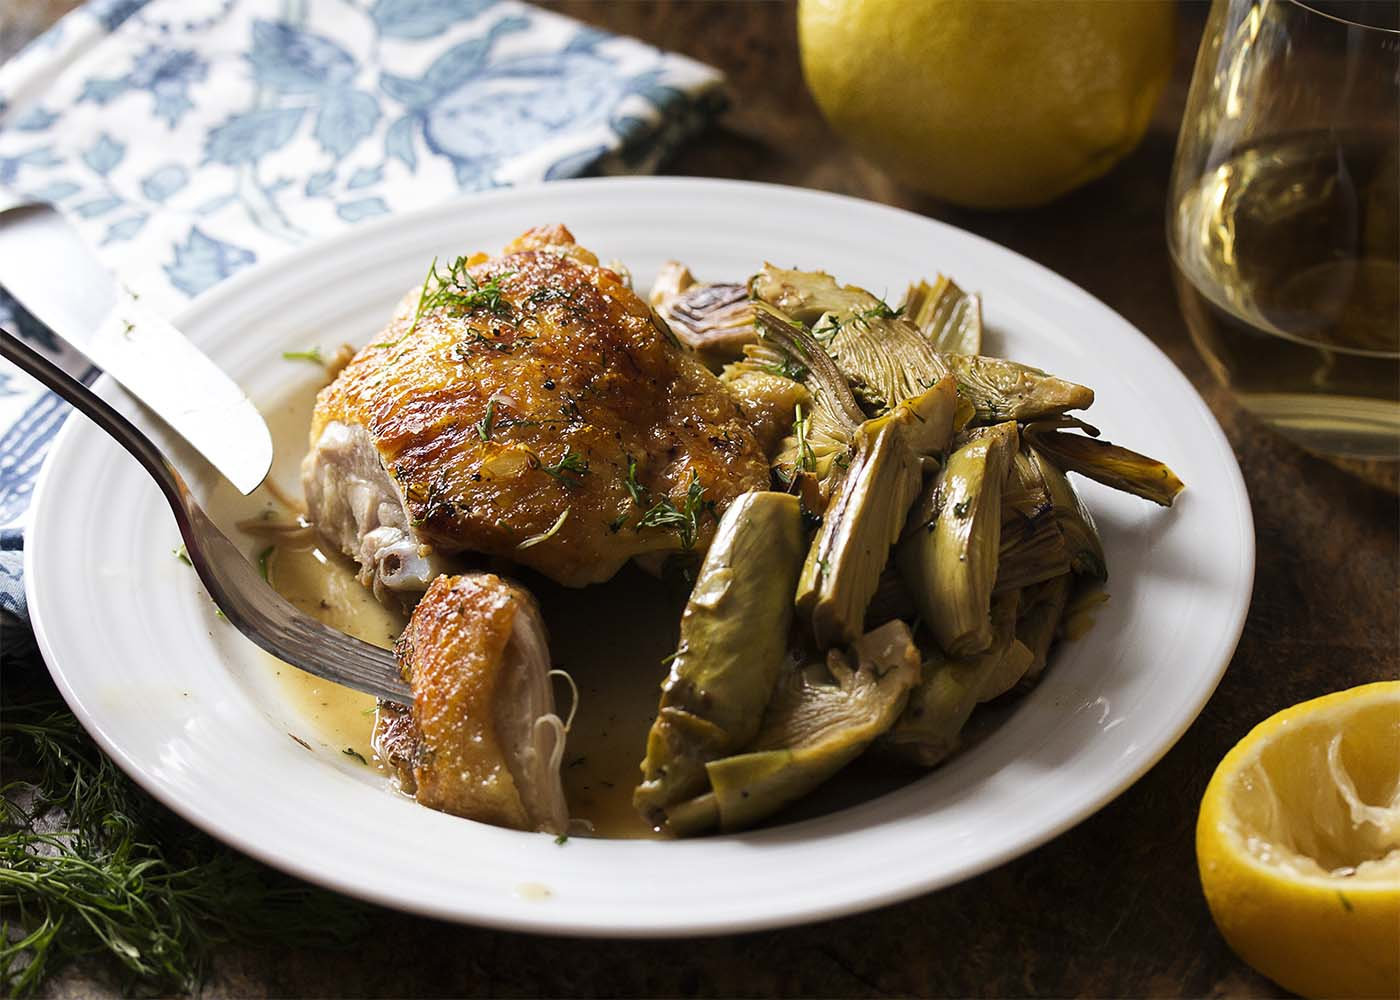 Sliced Mediterranean chicken thigh with artichokes on a plate